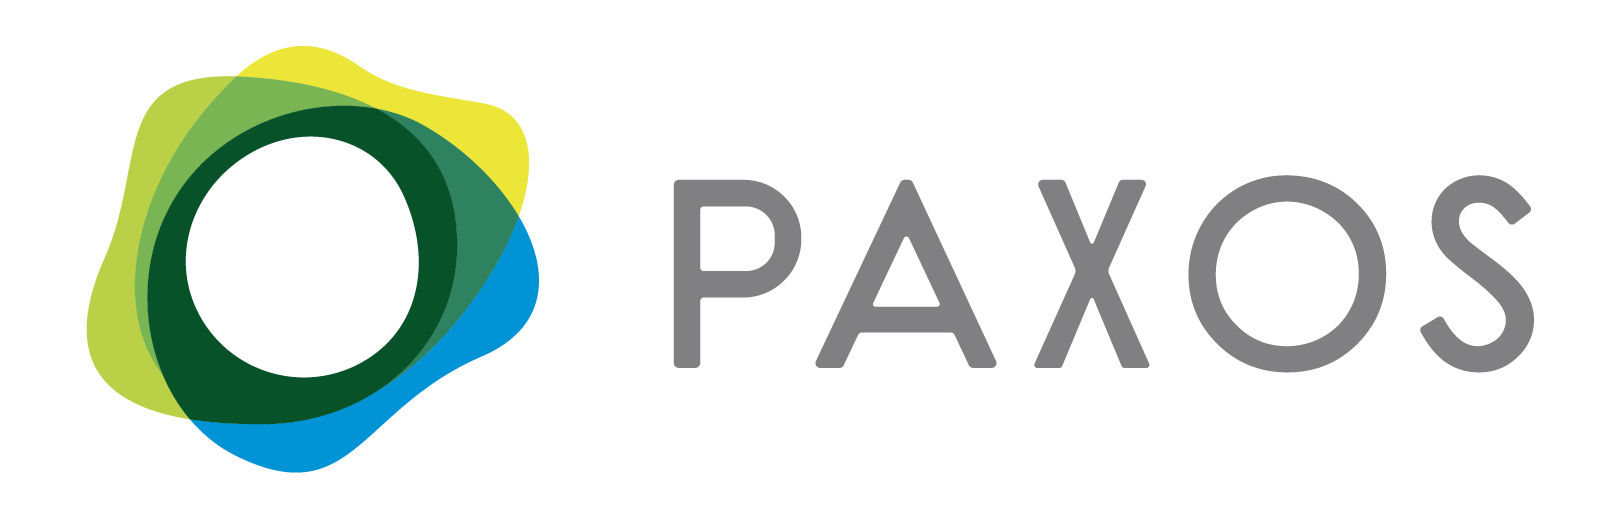 Paxos teams up with BitPay